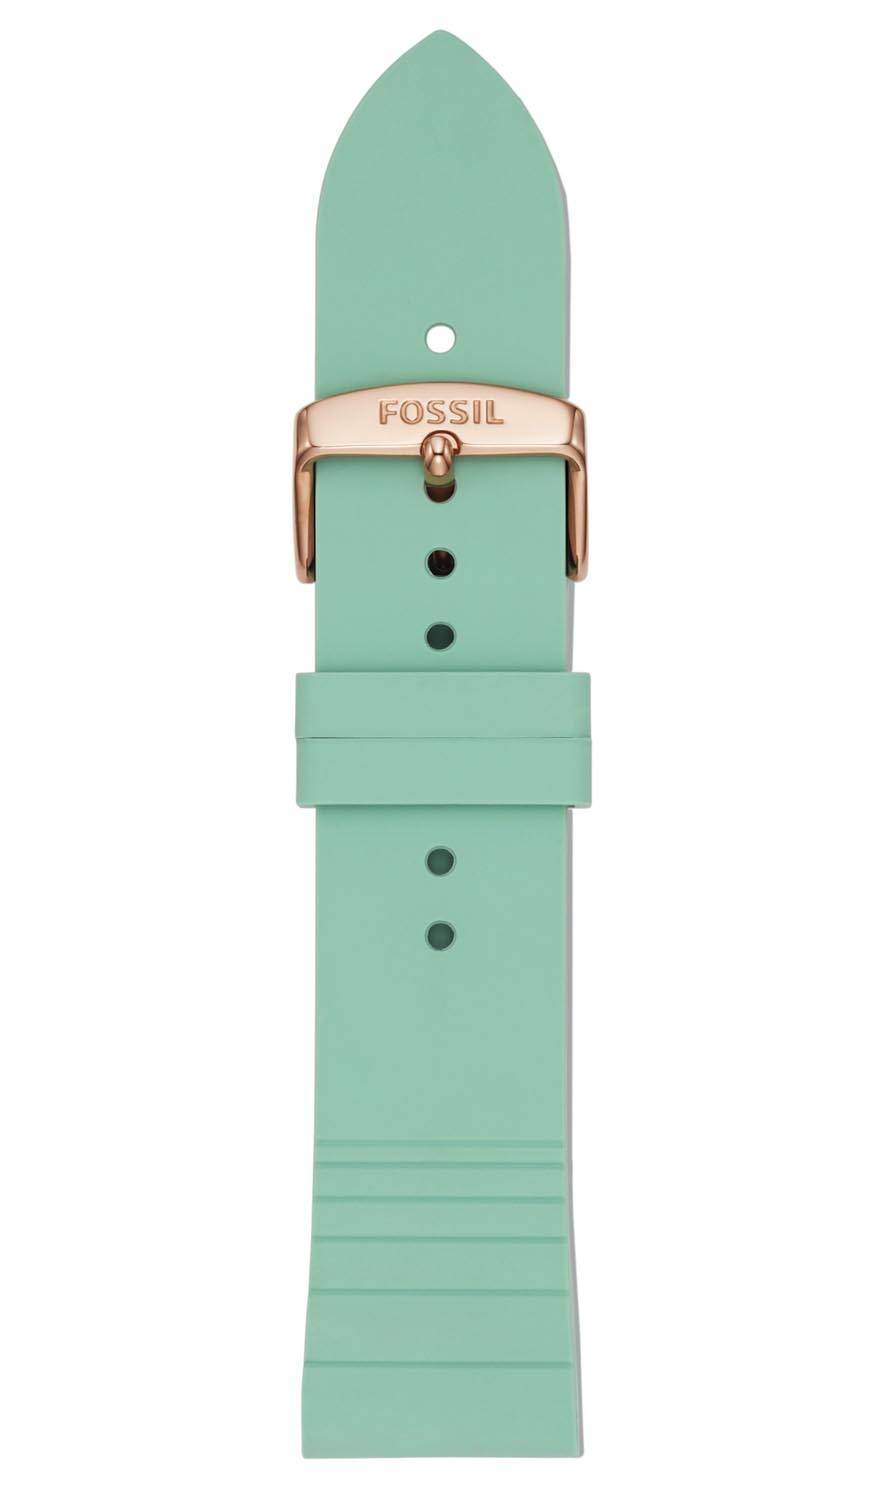 Fossil 22mm Mint Green Silicone Strap S221351